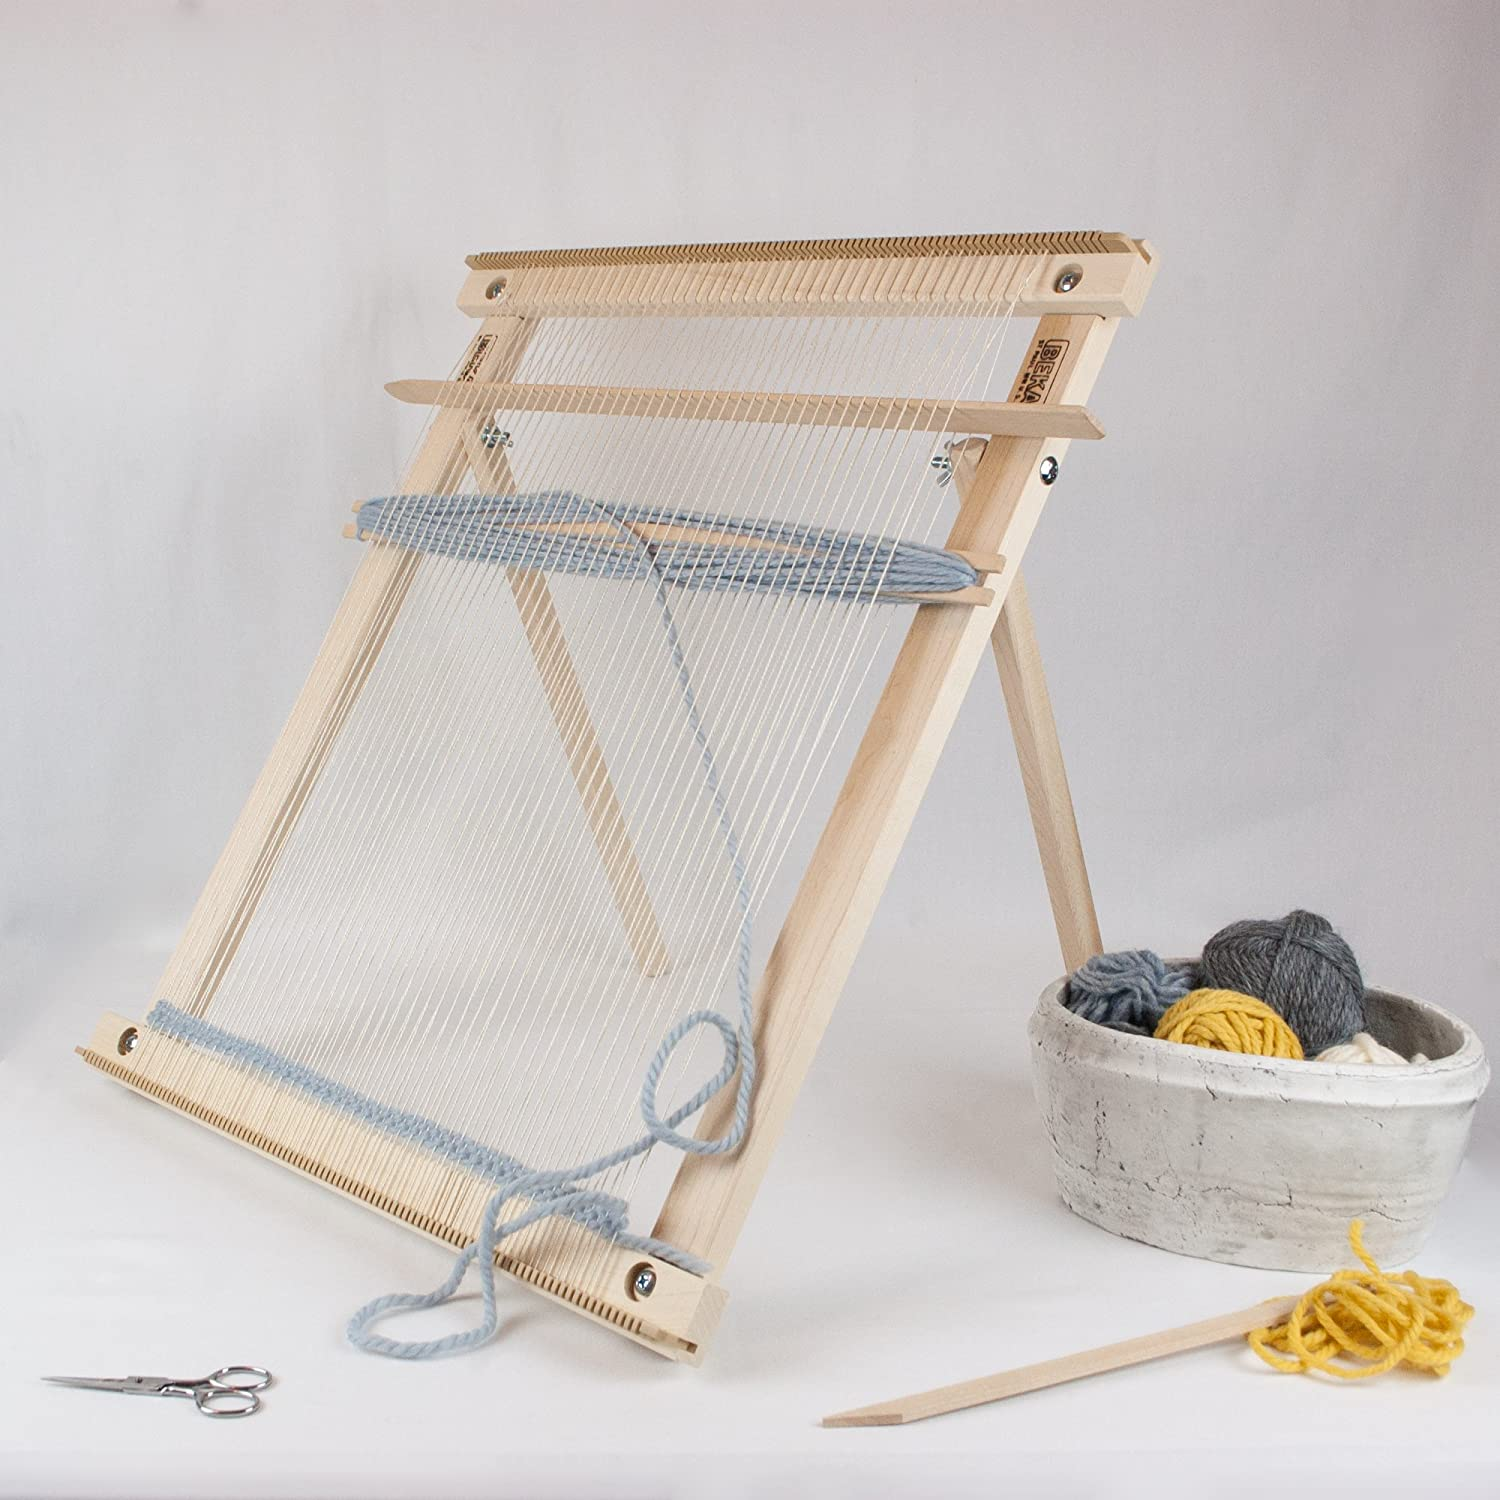 Beka 20″ Weaving Frame Loom with Stand – The Deluxe!